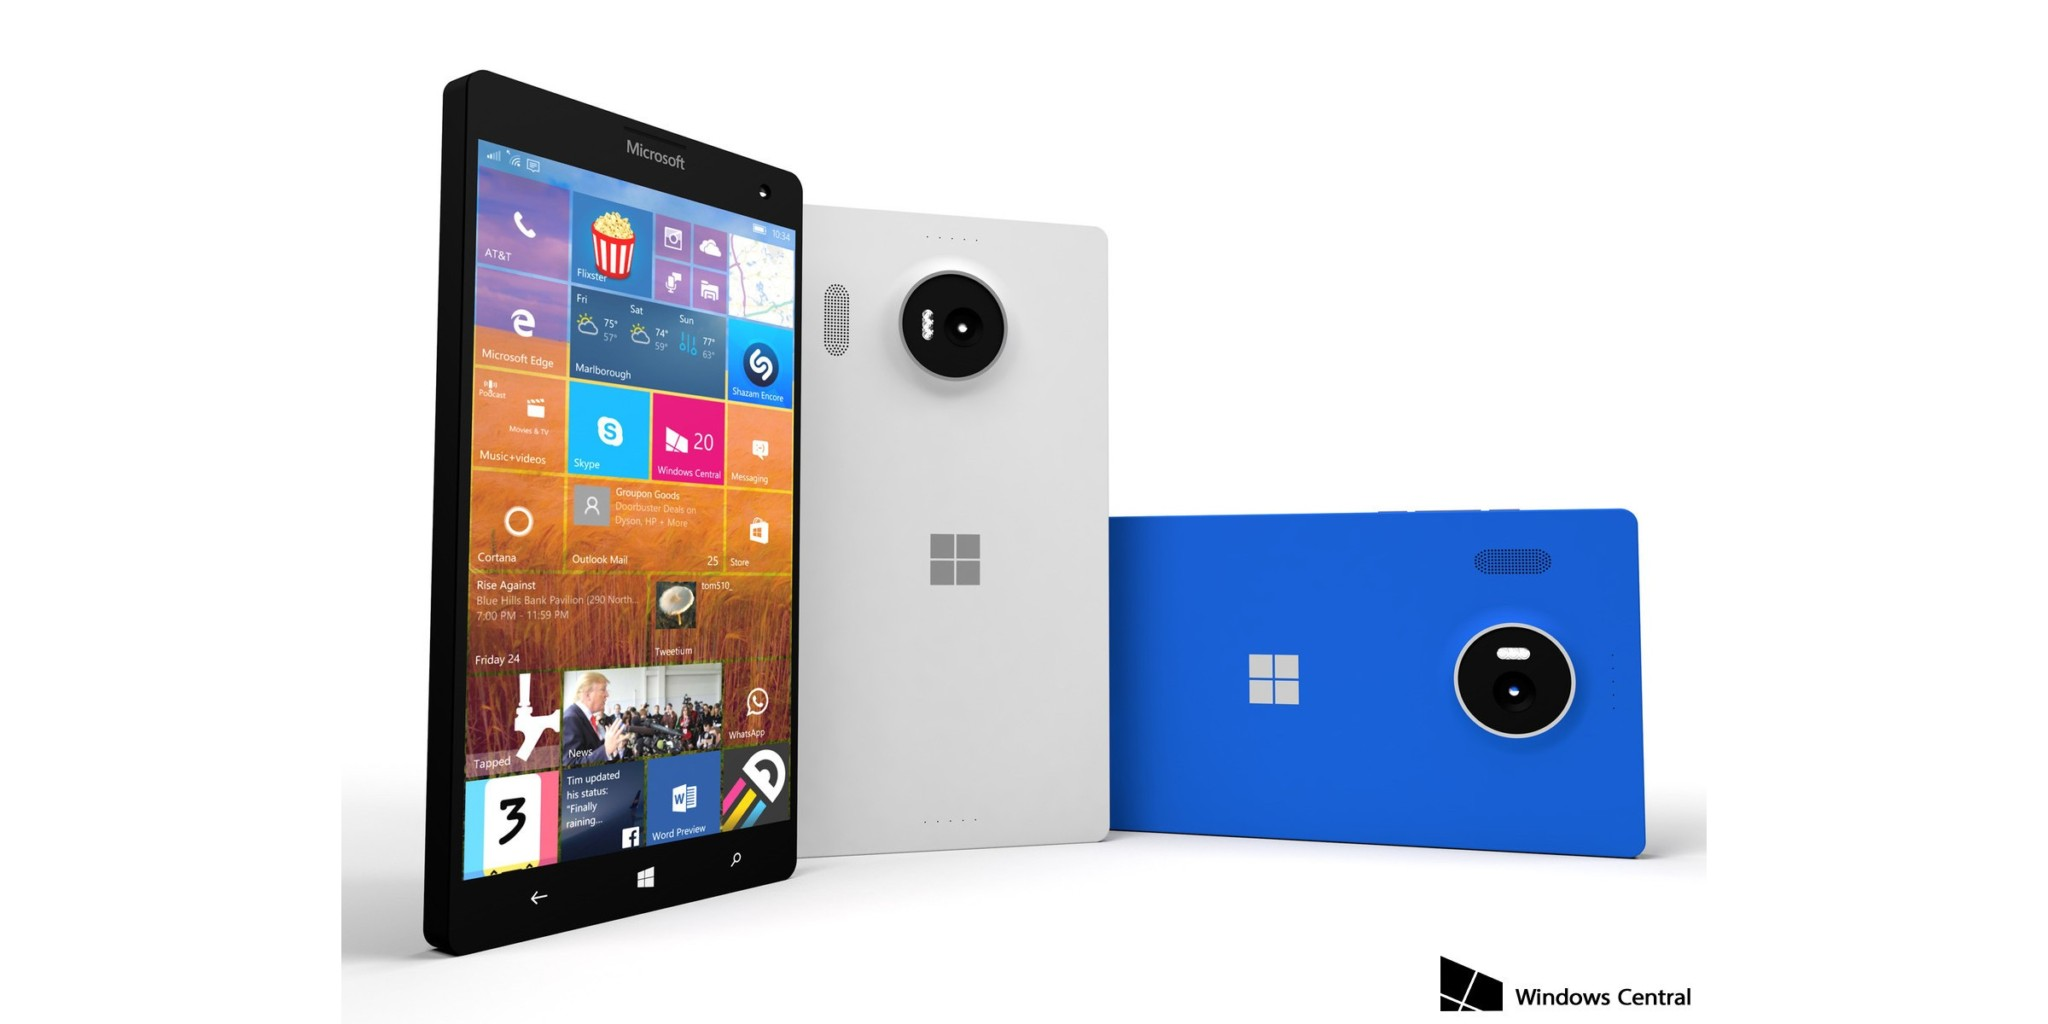 microsoft-lumia-950-xl-renders-are-closest-to-the-real-thing-487799-2